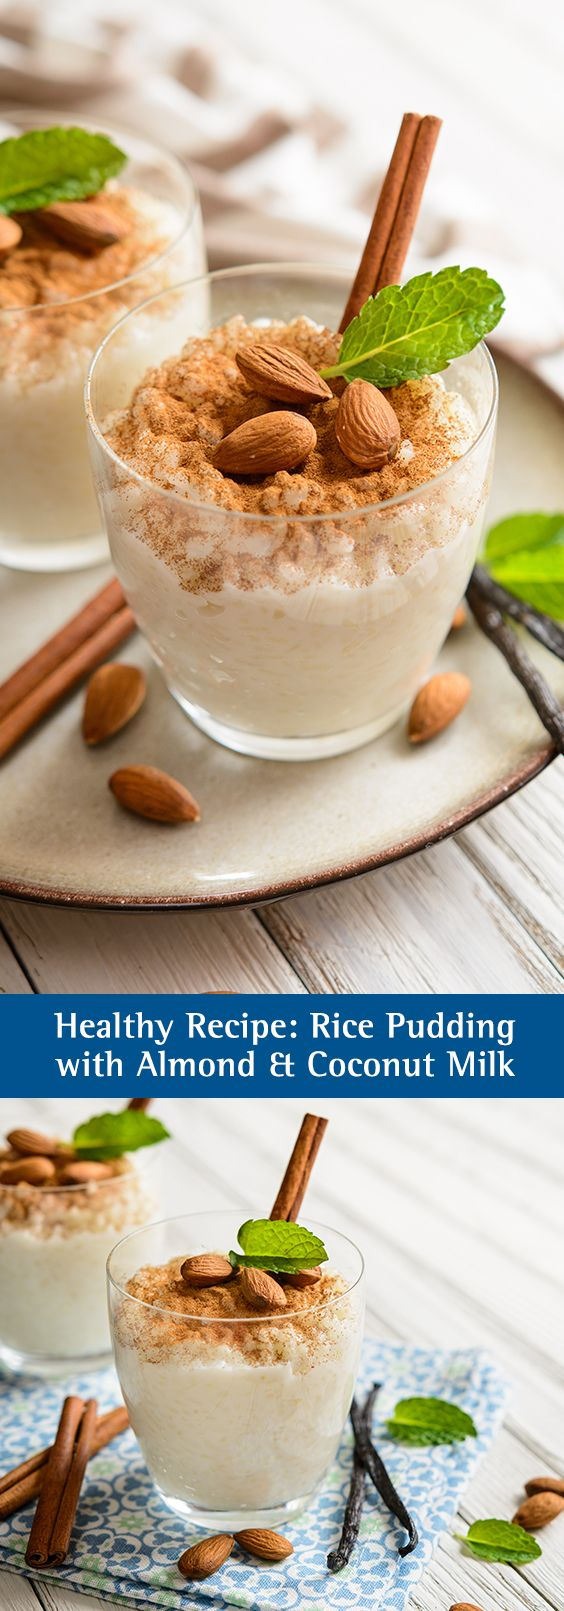 Almond and coconut milk rice pudding | Guilt free dessert ...